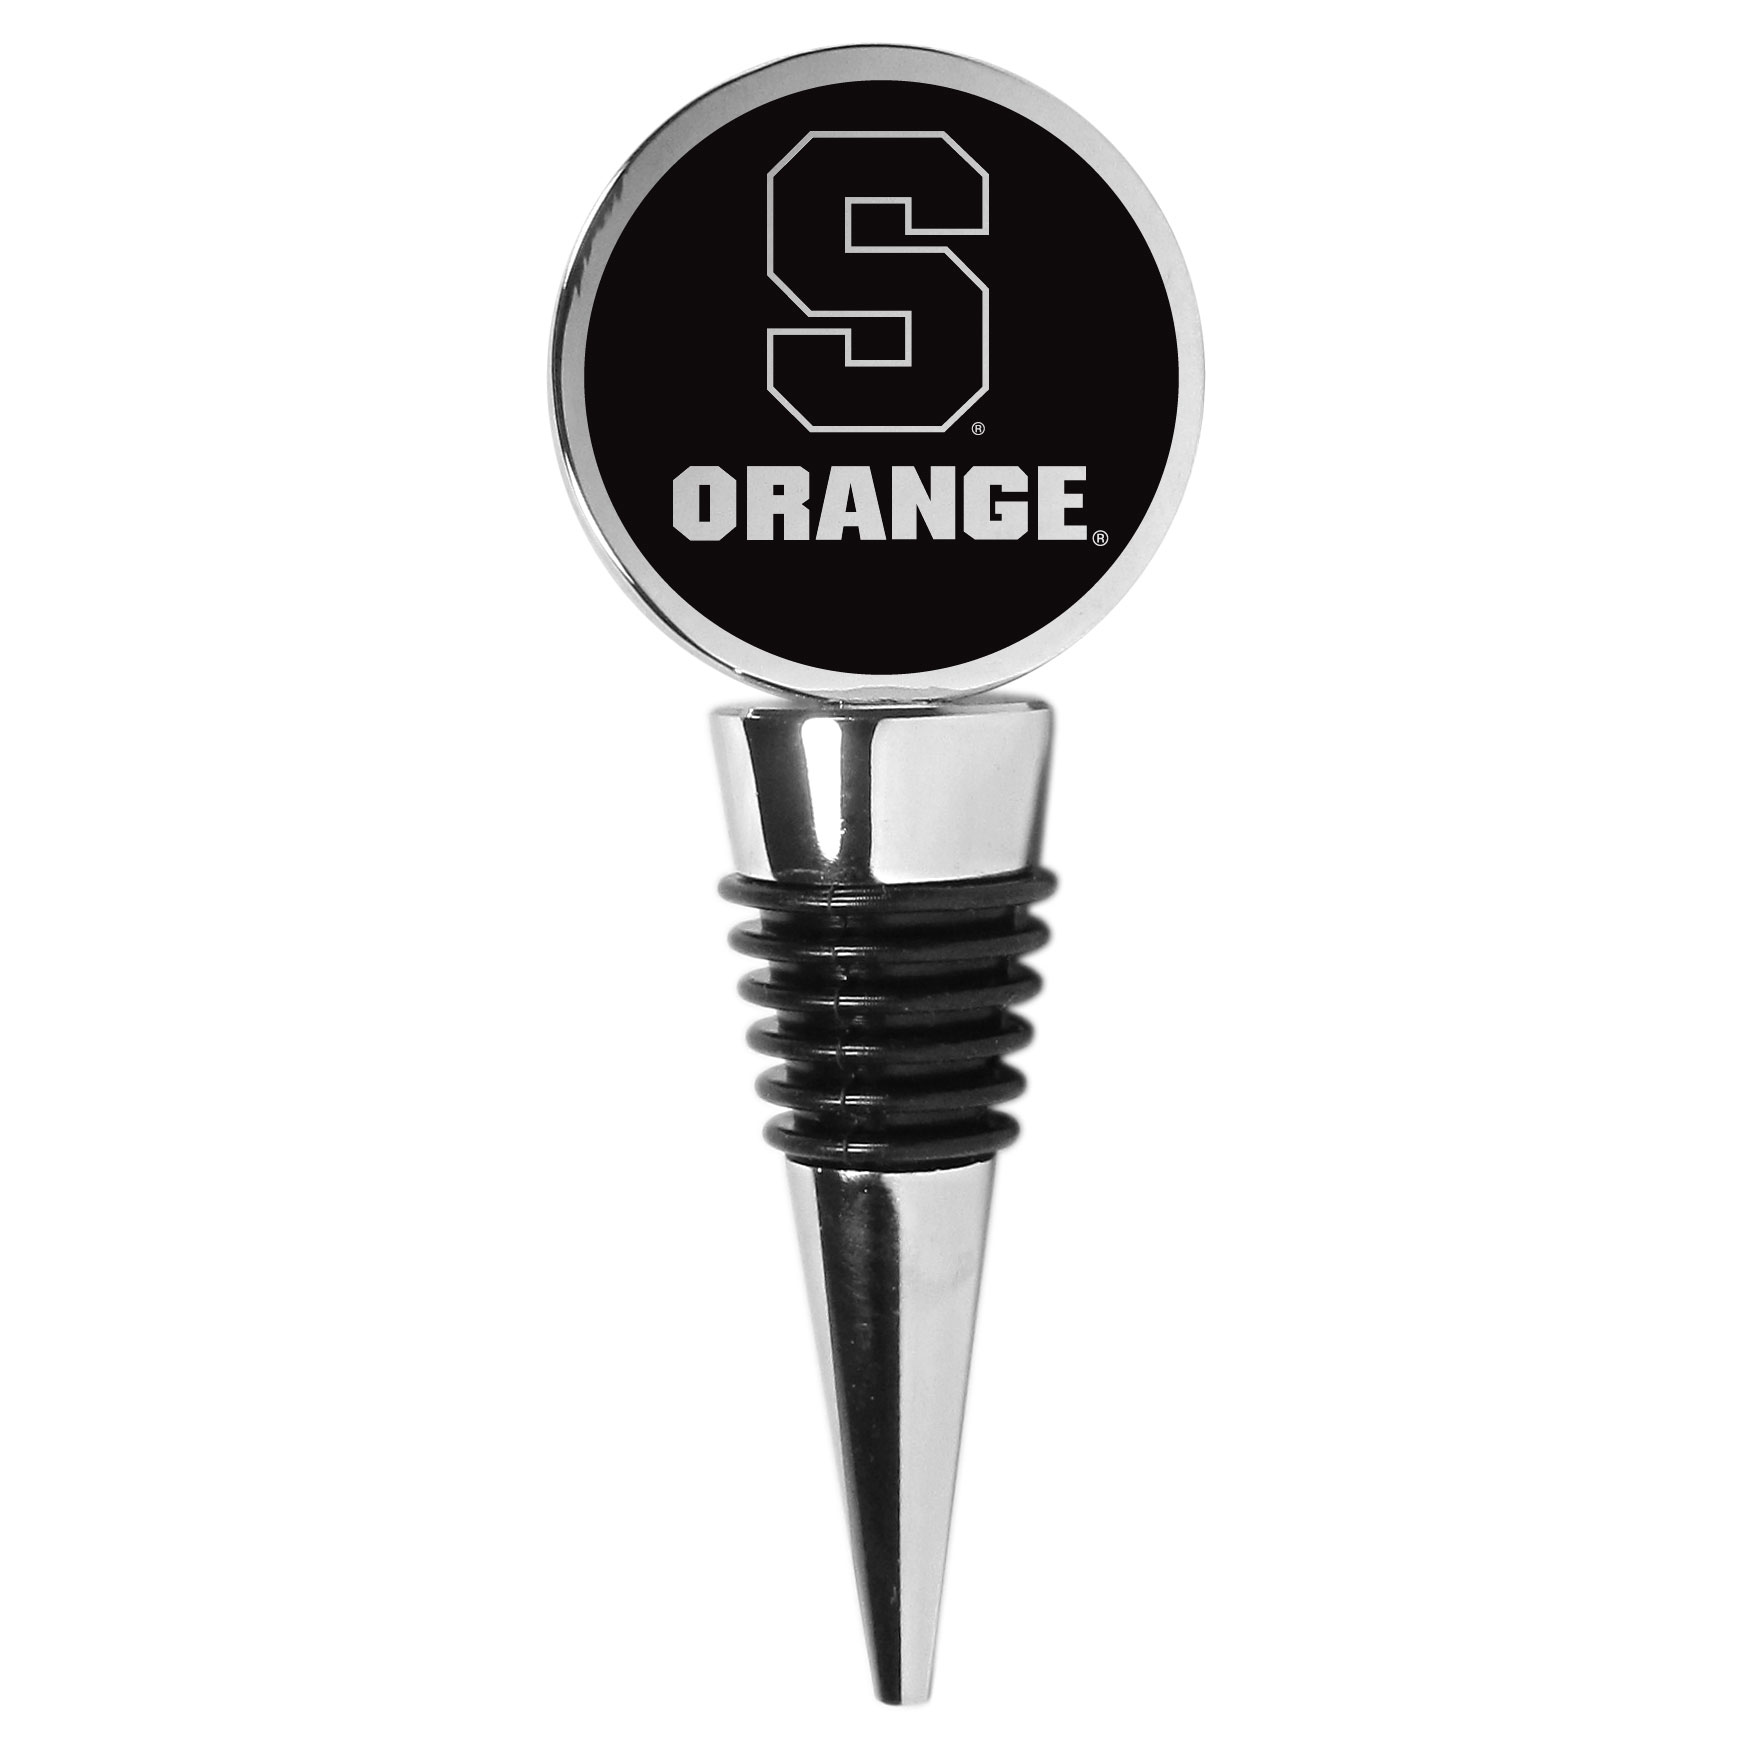 Syracuse Orange Wine Stopper - This beautiful Syracuse Orange wine stopper has a classy monochromatic logo on the top disc. The tapered rubber rings allow you to create a tight seal on multiple sizes of wine bottles so that you are able to preserve the wine for later enjoyment. This a perfect addition to a game day celebration.